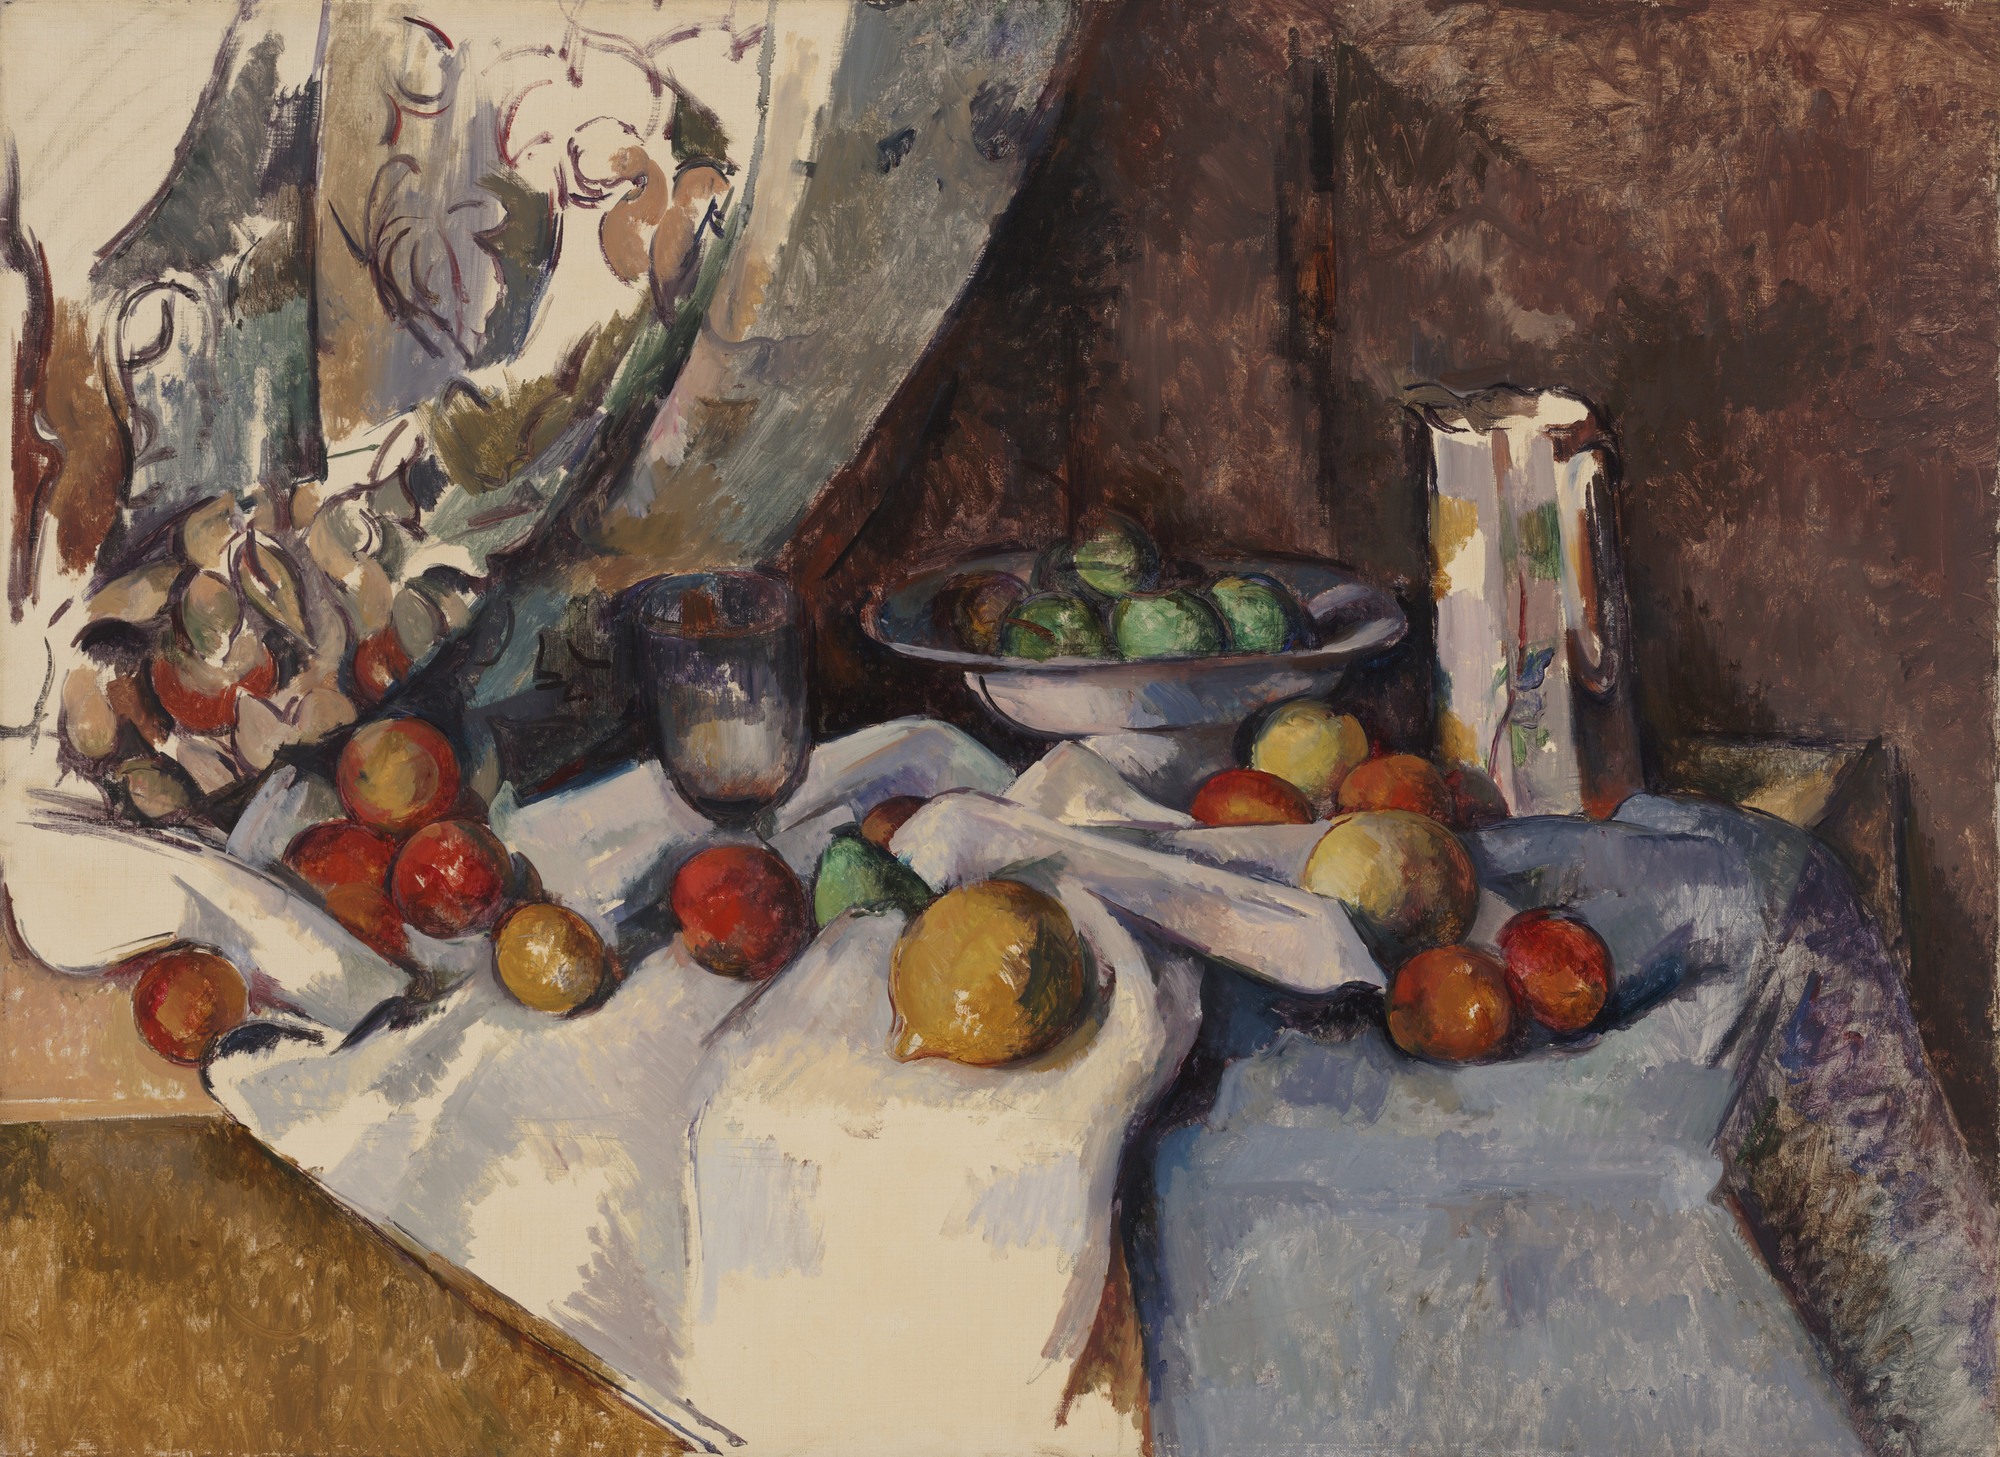 Paul Cézanne. Still Life with Apples. 1895-98